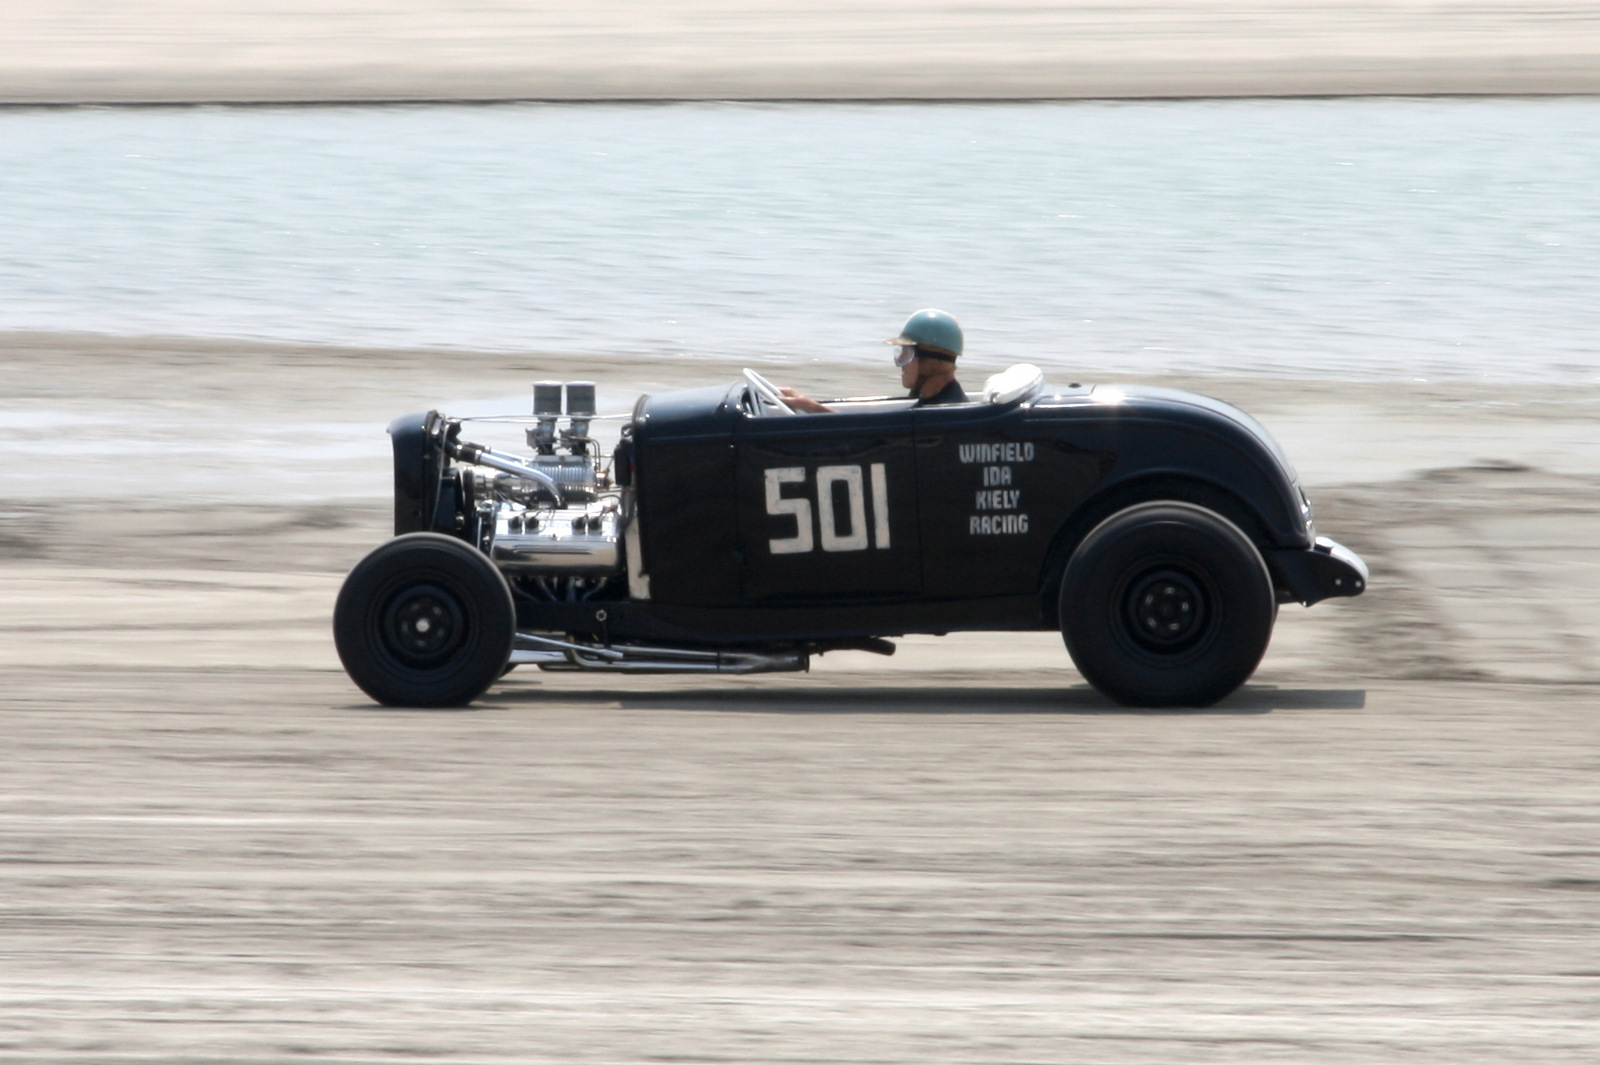 Gene Winfield, 91 years old and still racing.